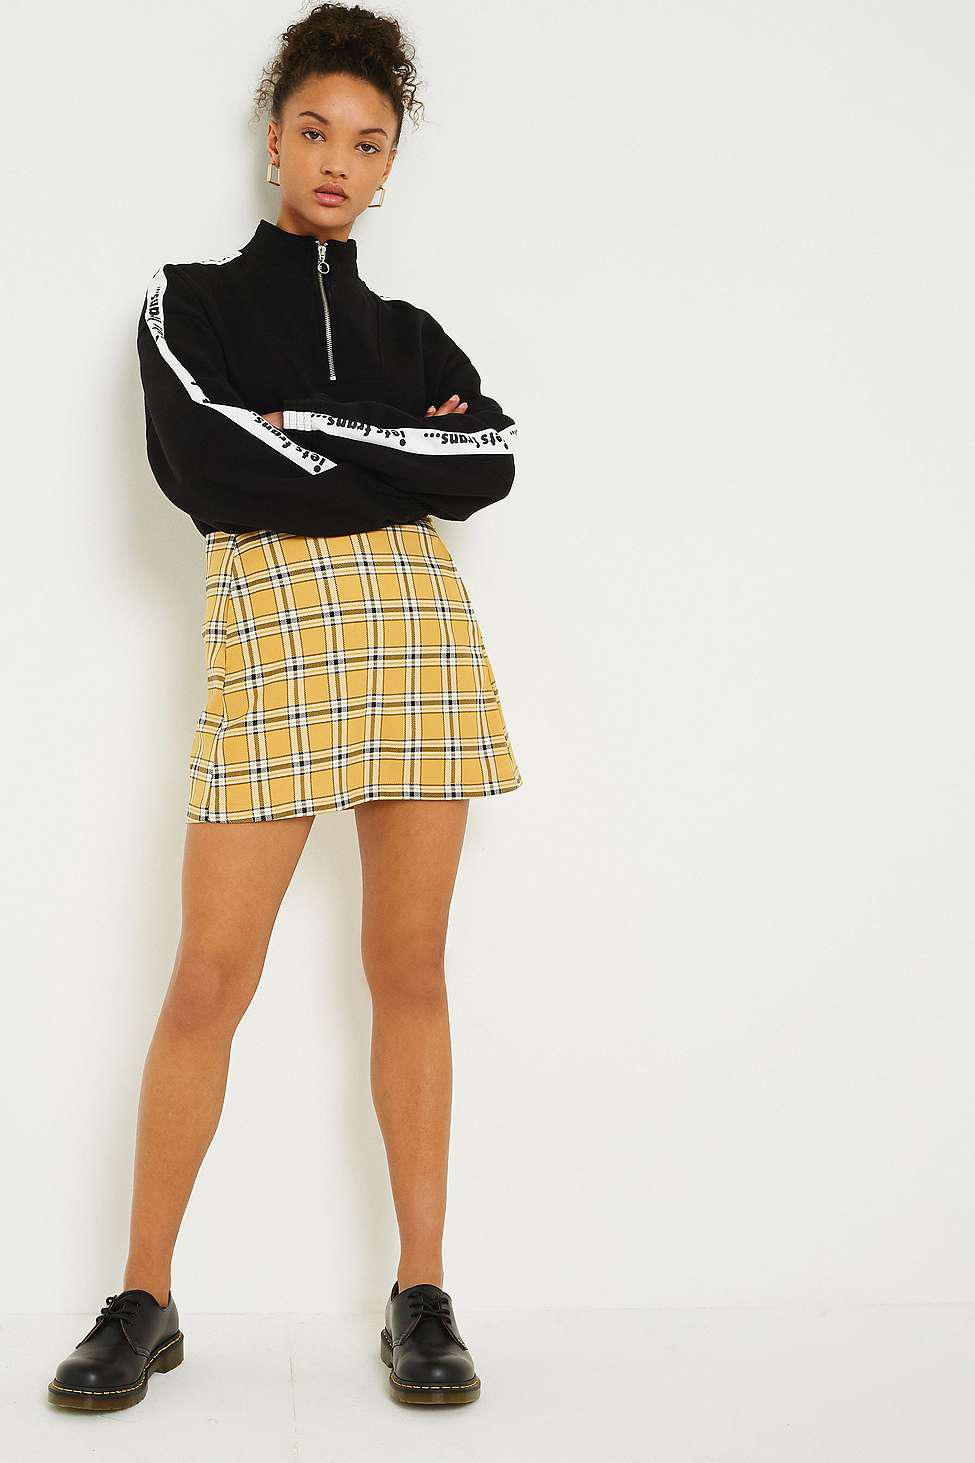 ff50f80a7 Urban Outfitters Uo Mustard Yellow Checked Pelmet Skirt - Womens Xs ...